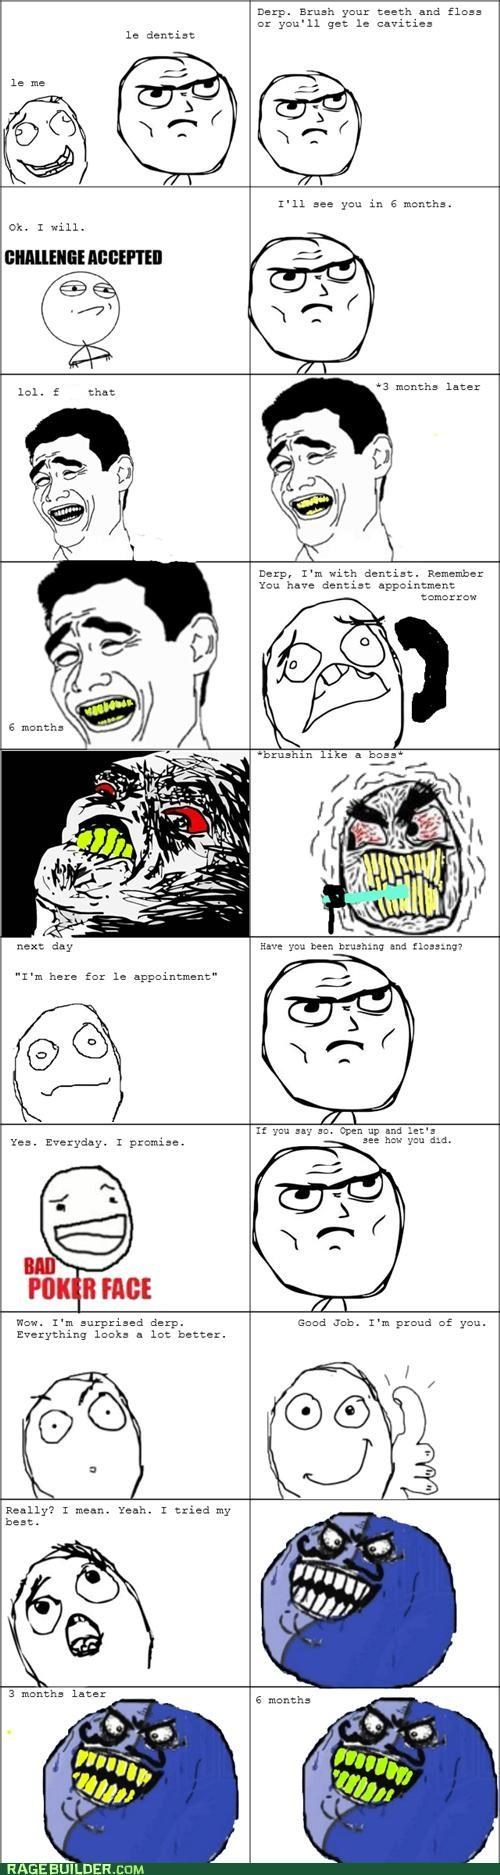 brushing and flossing dentist floss gross i lied Rage Comics teeth yellow - 4987430656